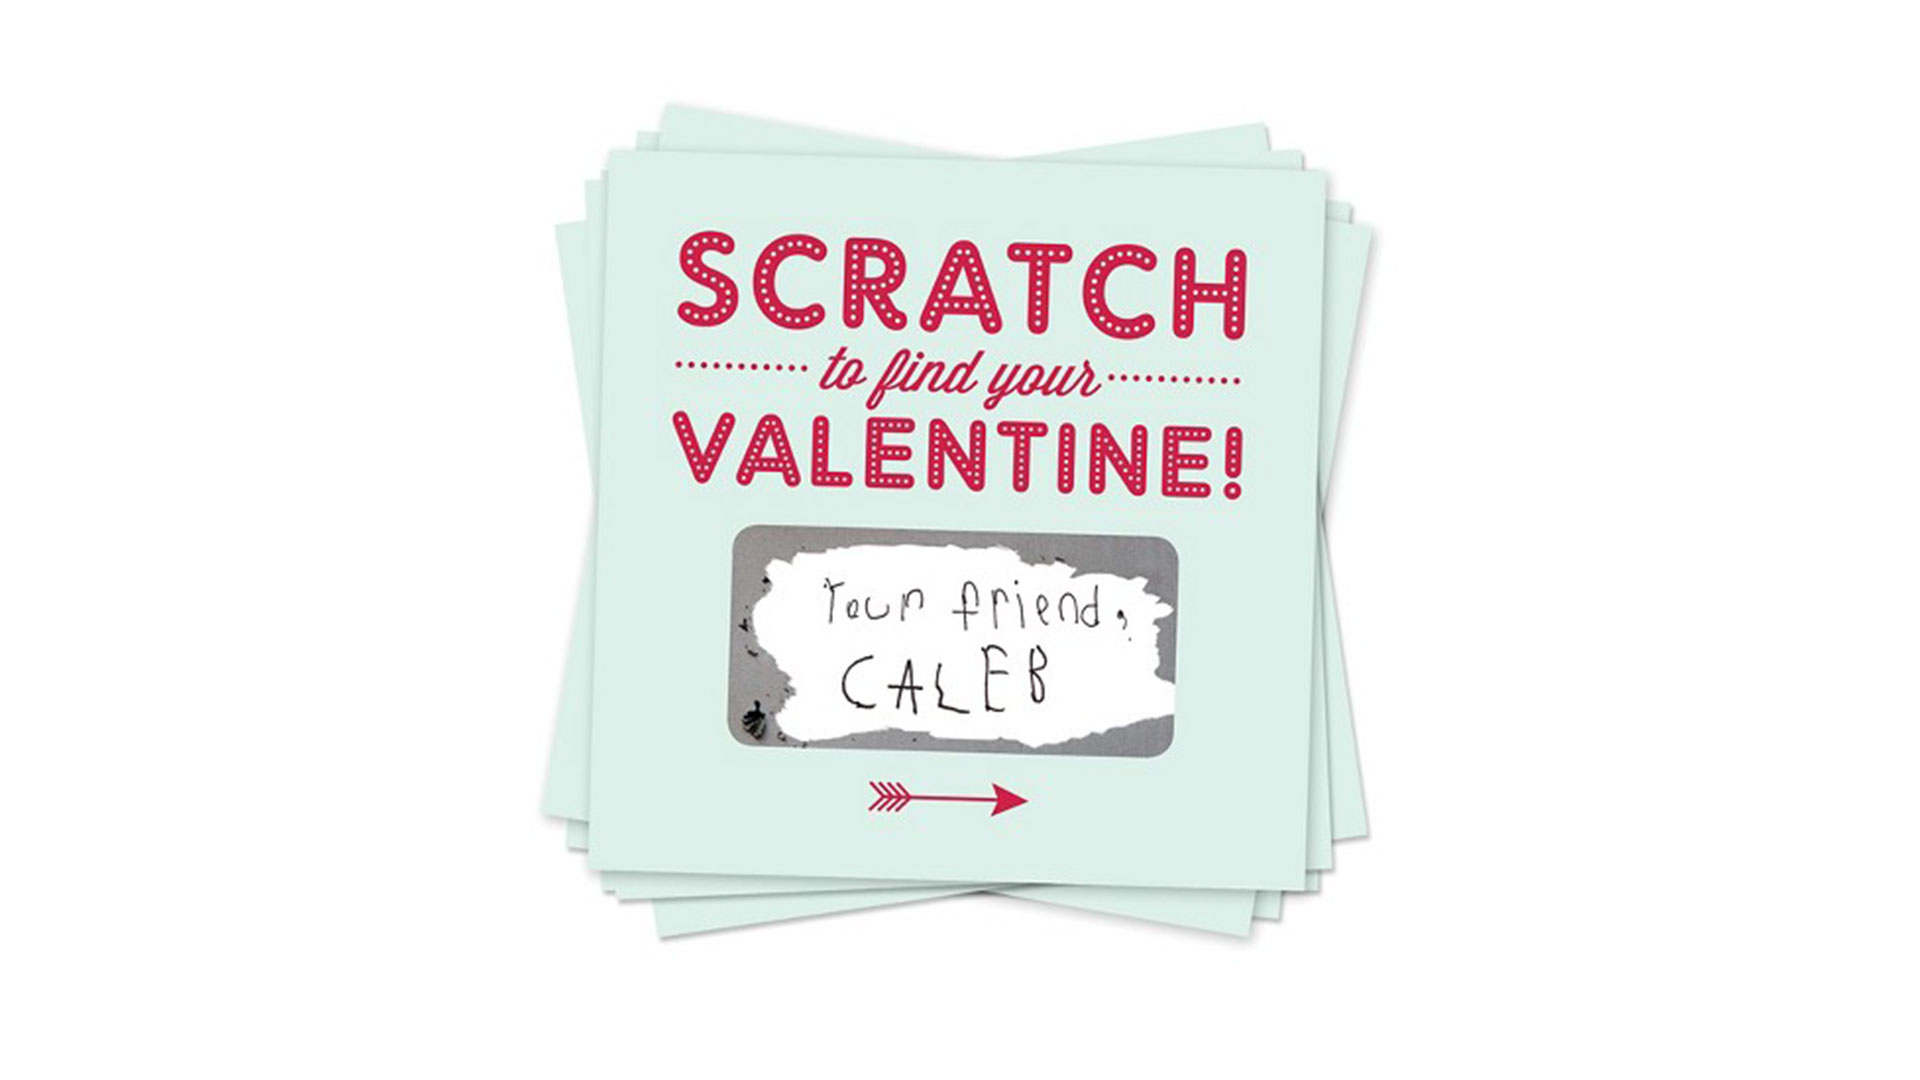 Scratch-Off Valentine's Day Cards